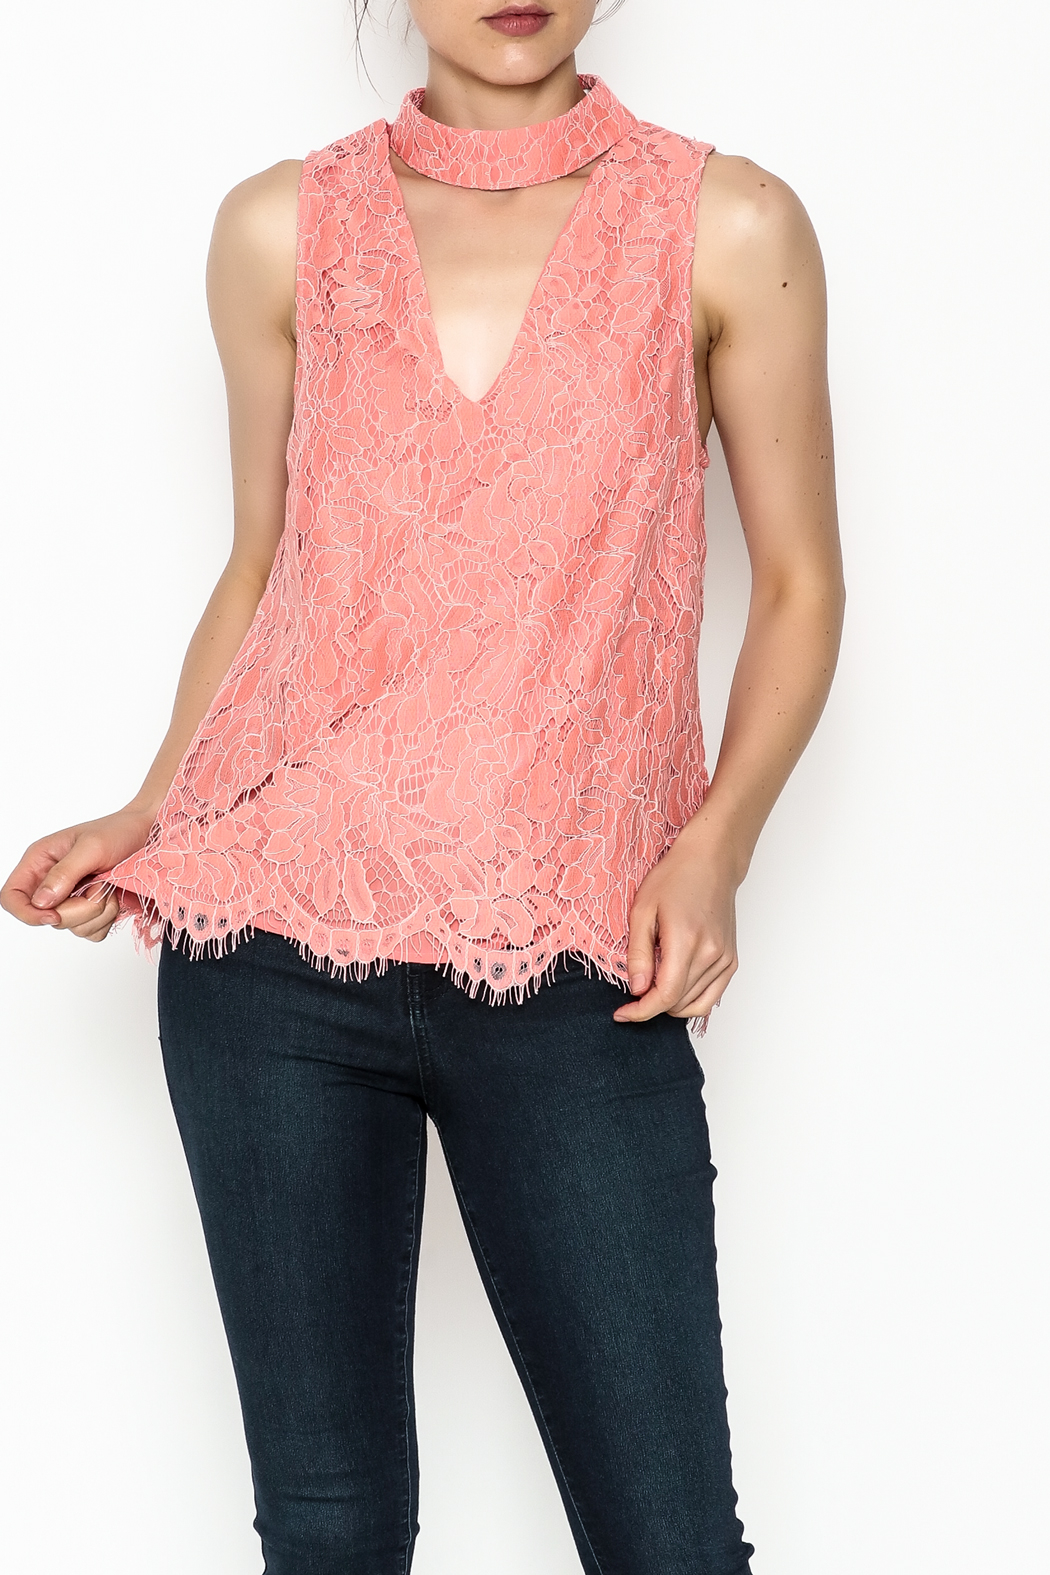 Do & Be Coral Lace Choker Top - Main Image